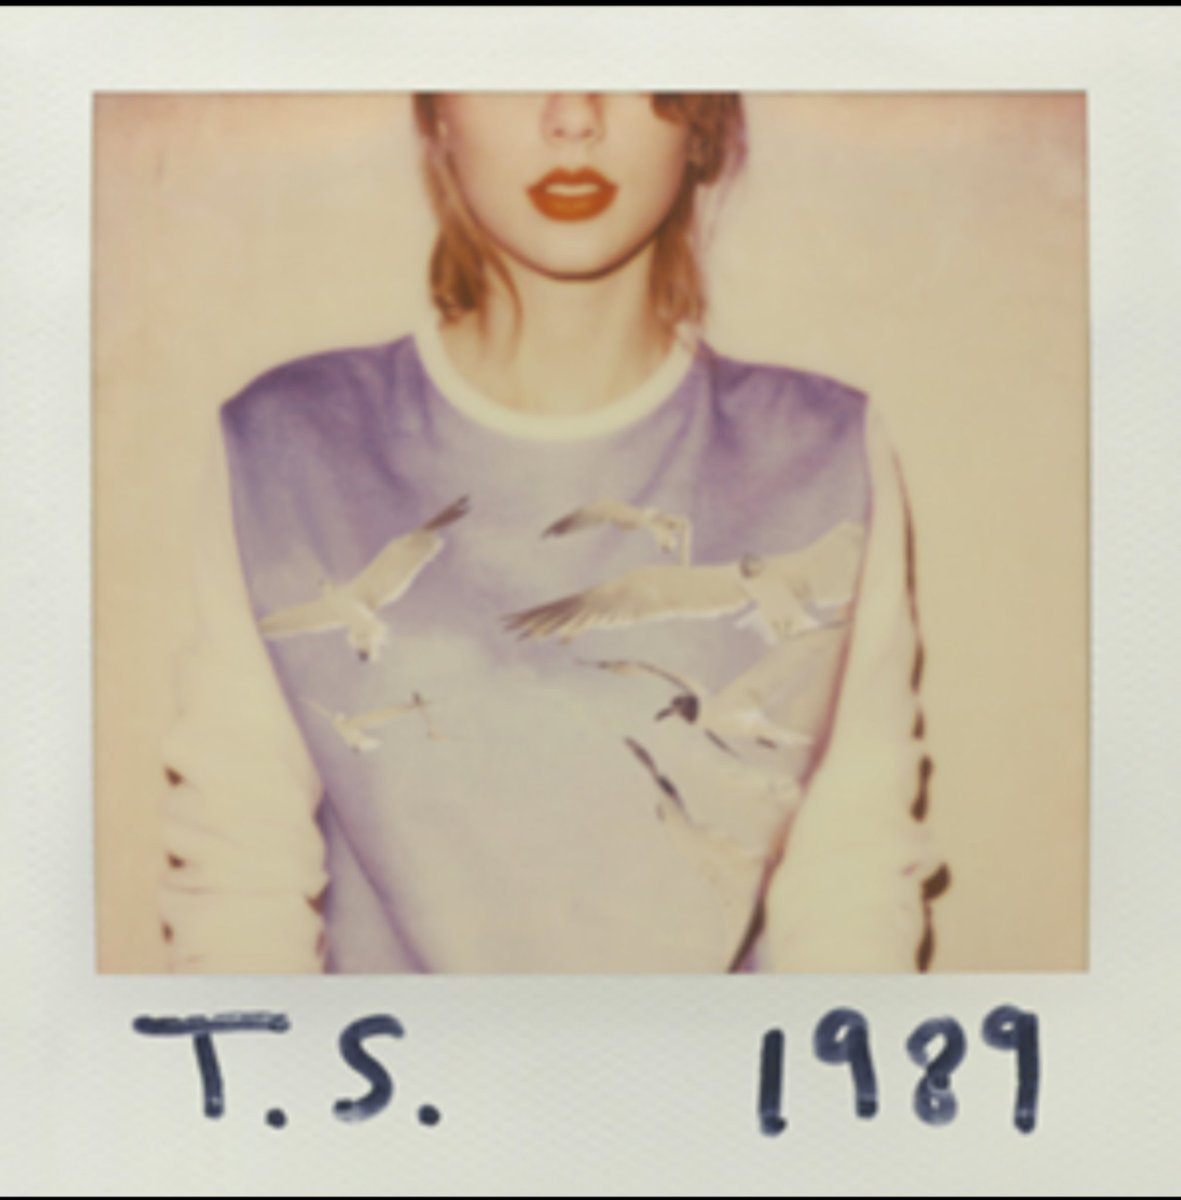 #Day13 #MCOMusicChallenge the album I didn't want people to know I like is Taylor's 1989. I've only openly came out as a Swiftie during Folklore. The fact that this is the album for the 13th day of this challenge is purely coincidence 😉